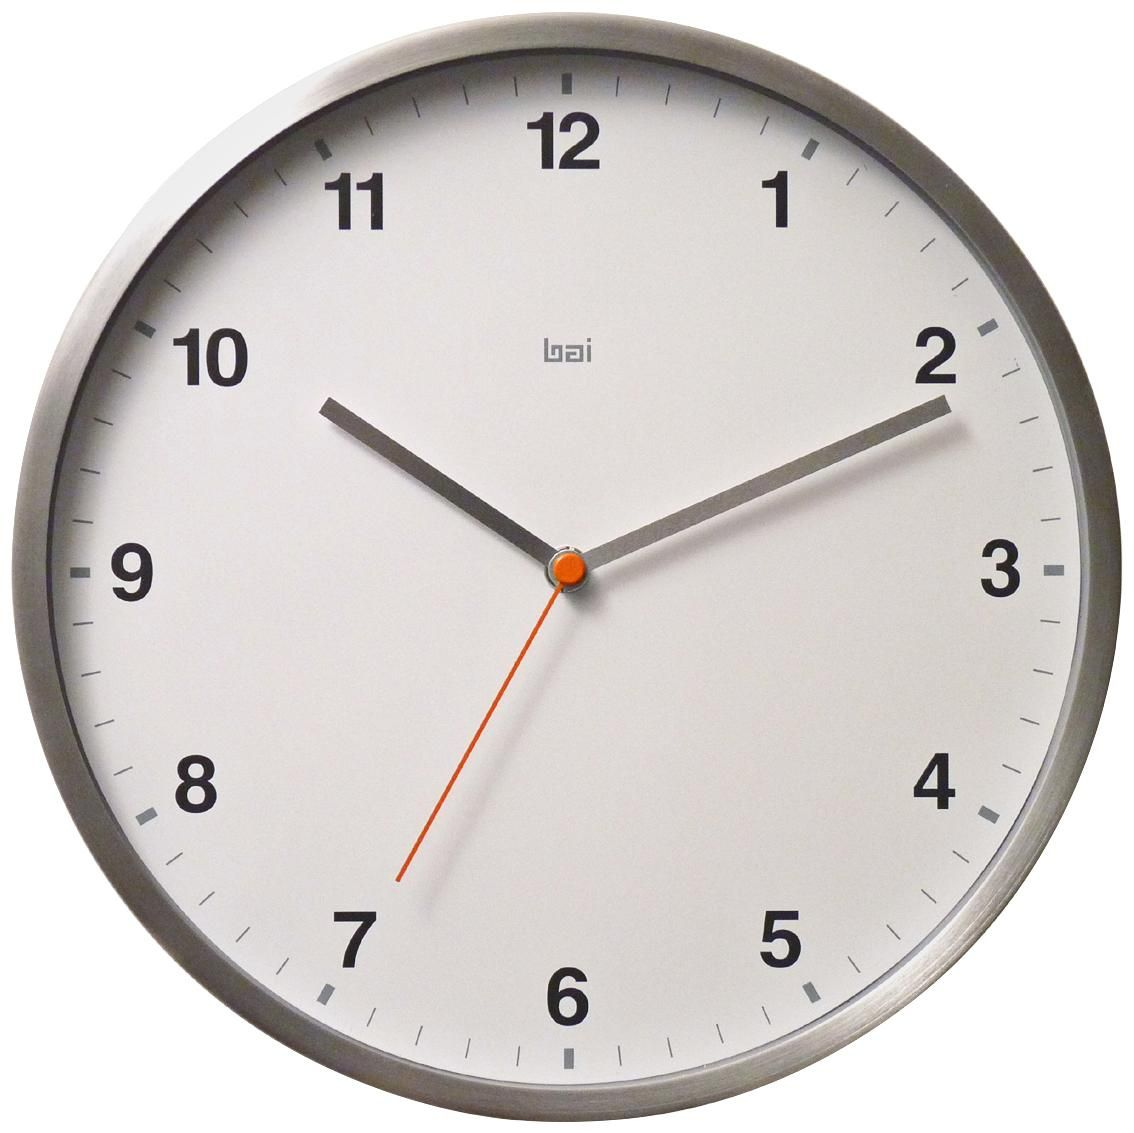 Helio Aluminum White 11 Round Wall Clock 7y778 Lamps Plus Round Wall Clocks Wall Clock Clock